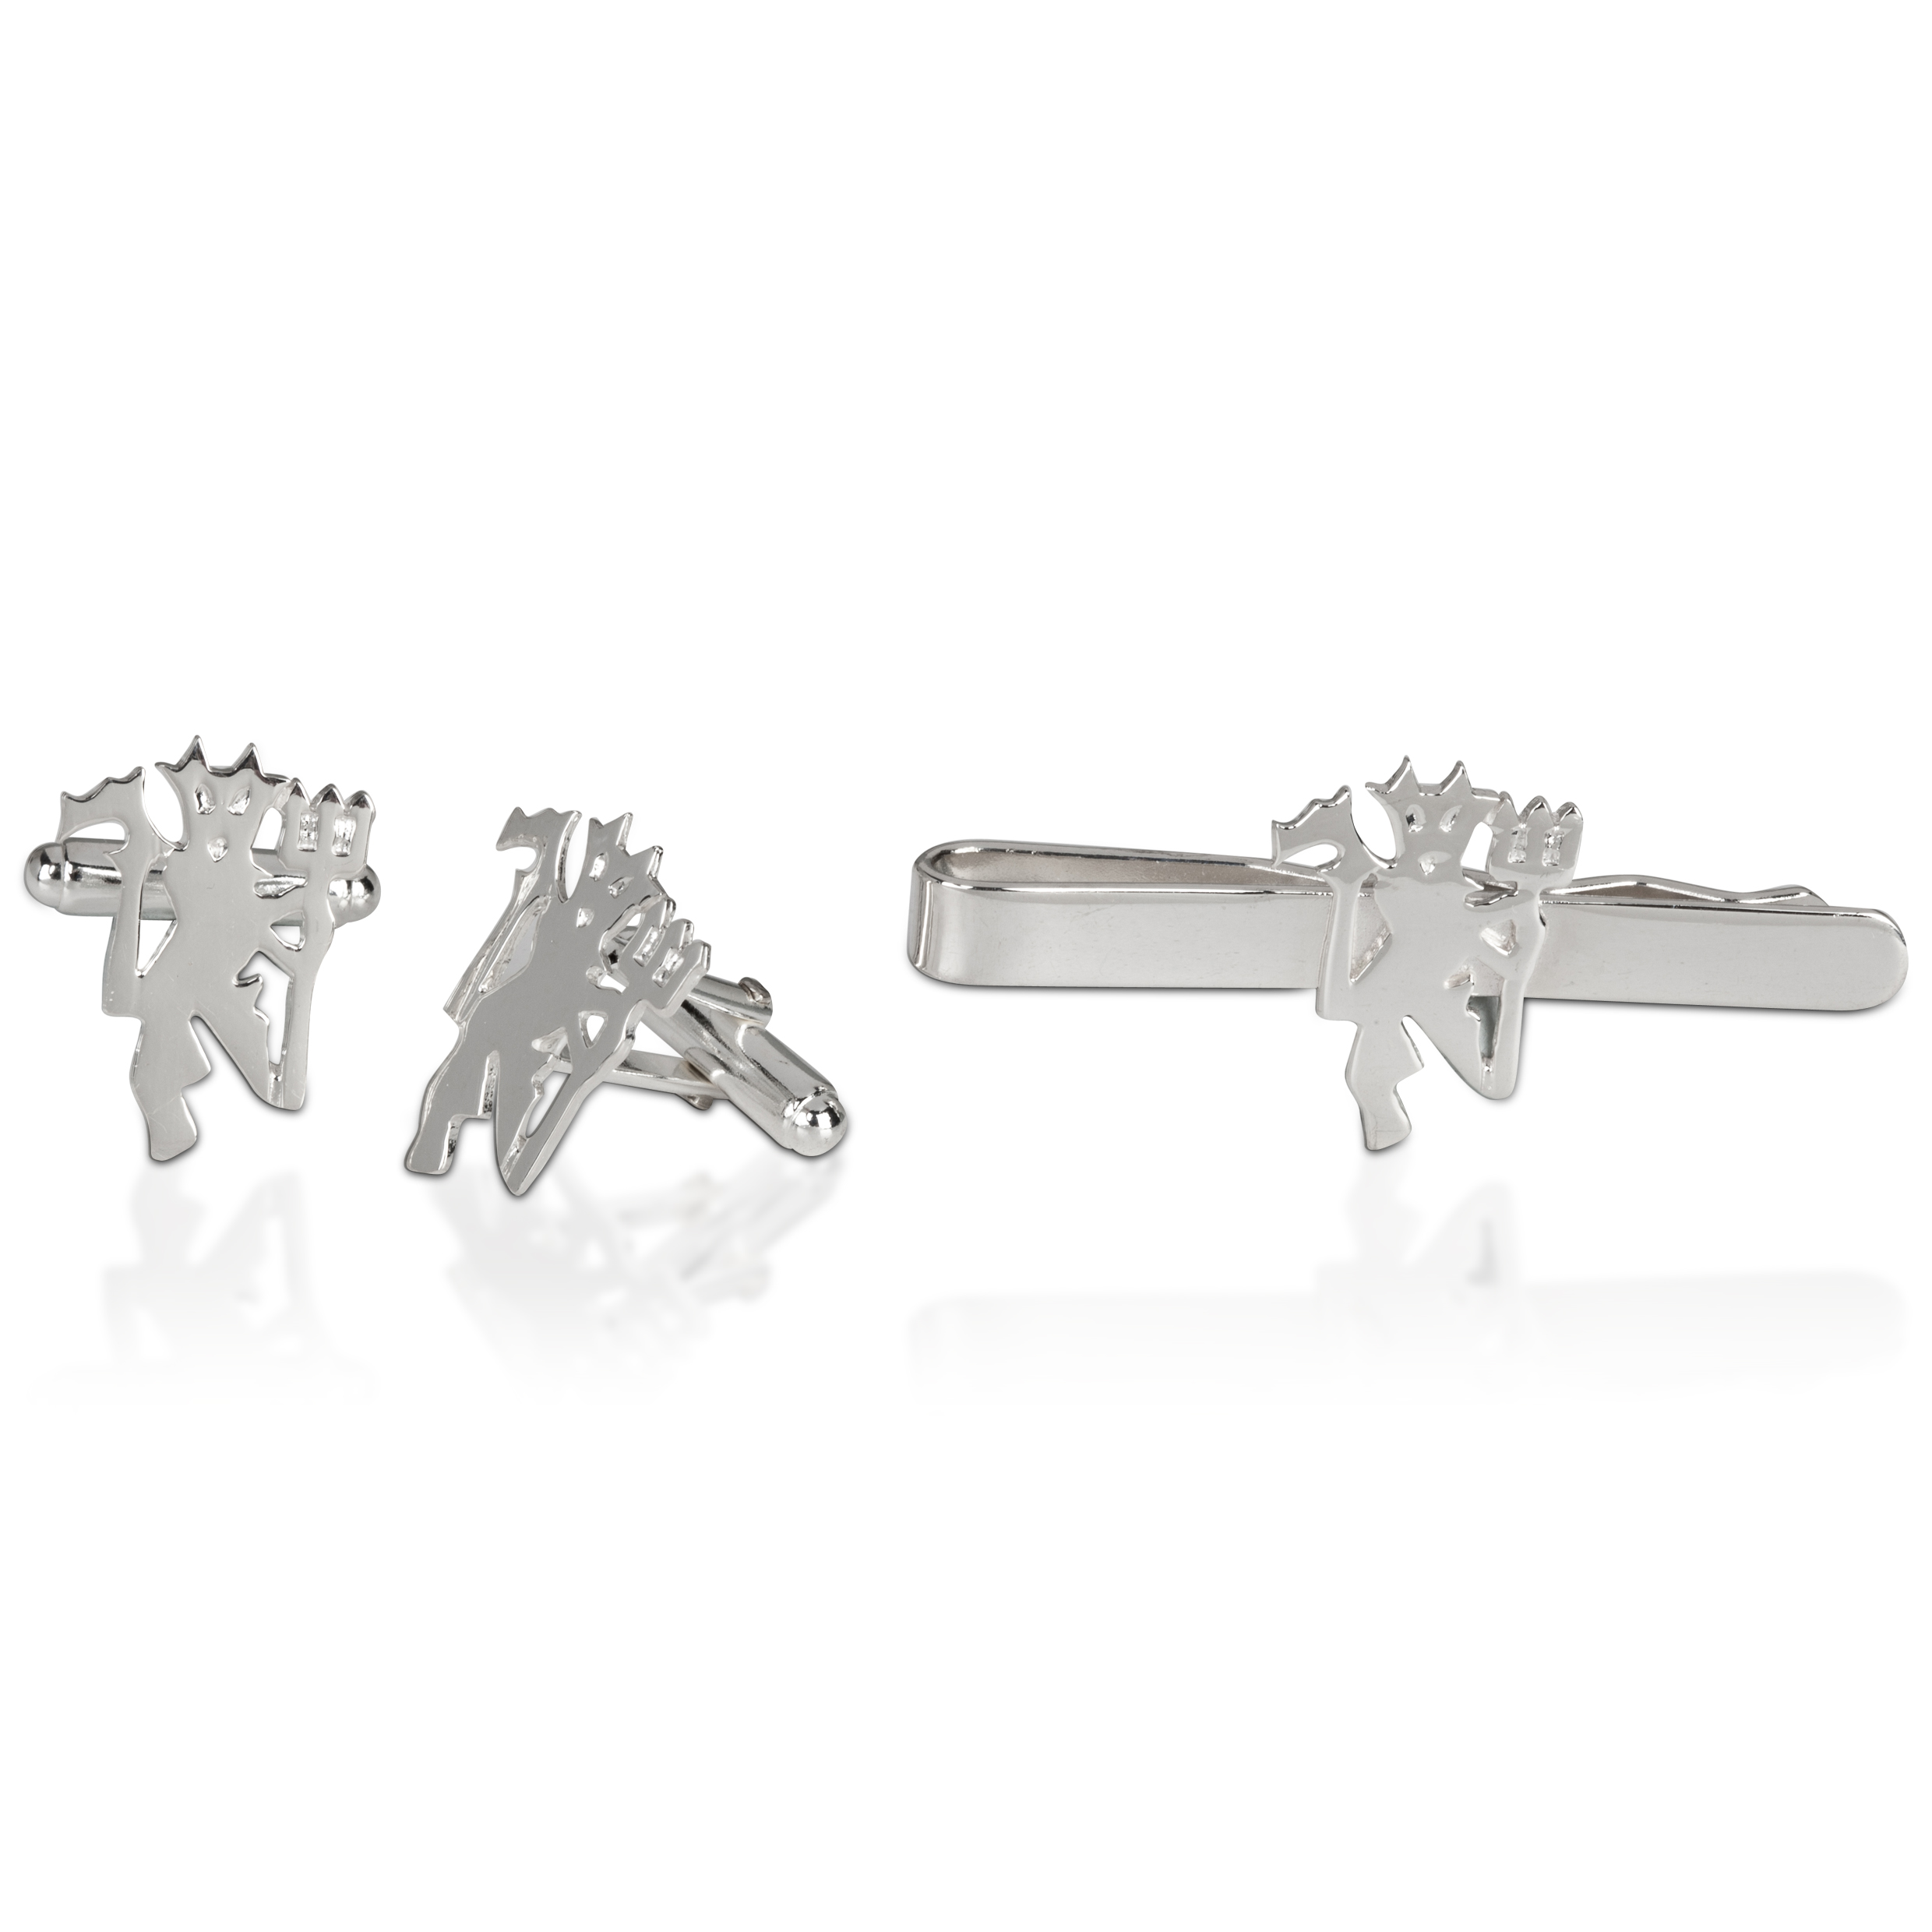 Manchester United Devil Cufflink & Tie Slide Set - Sterling Silver